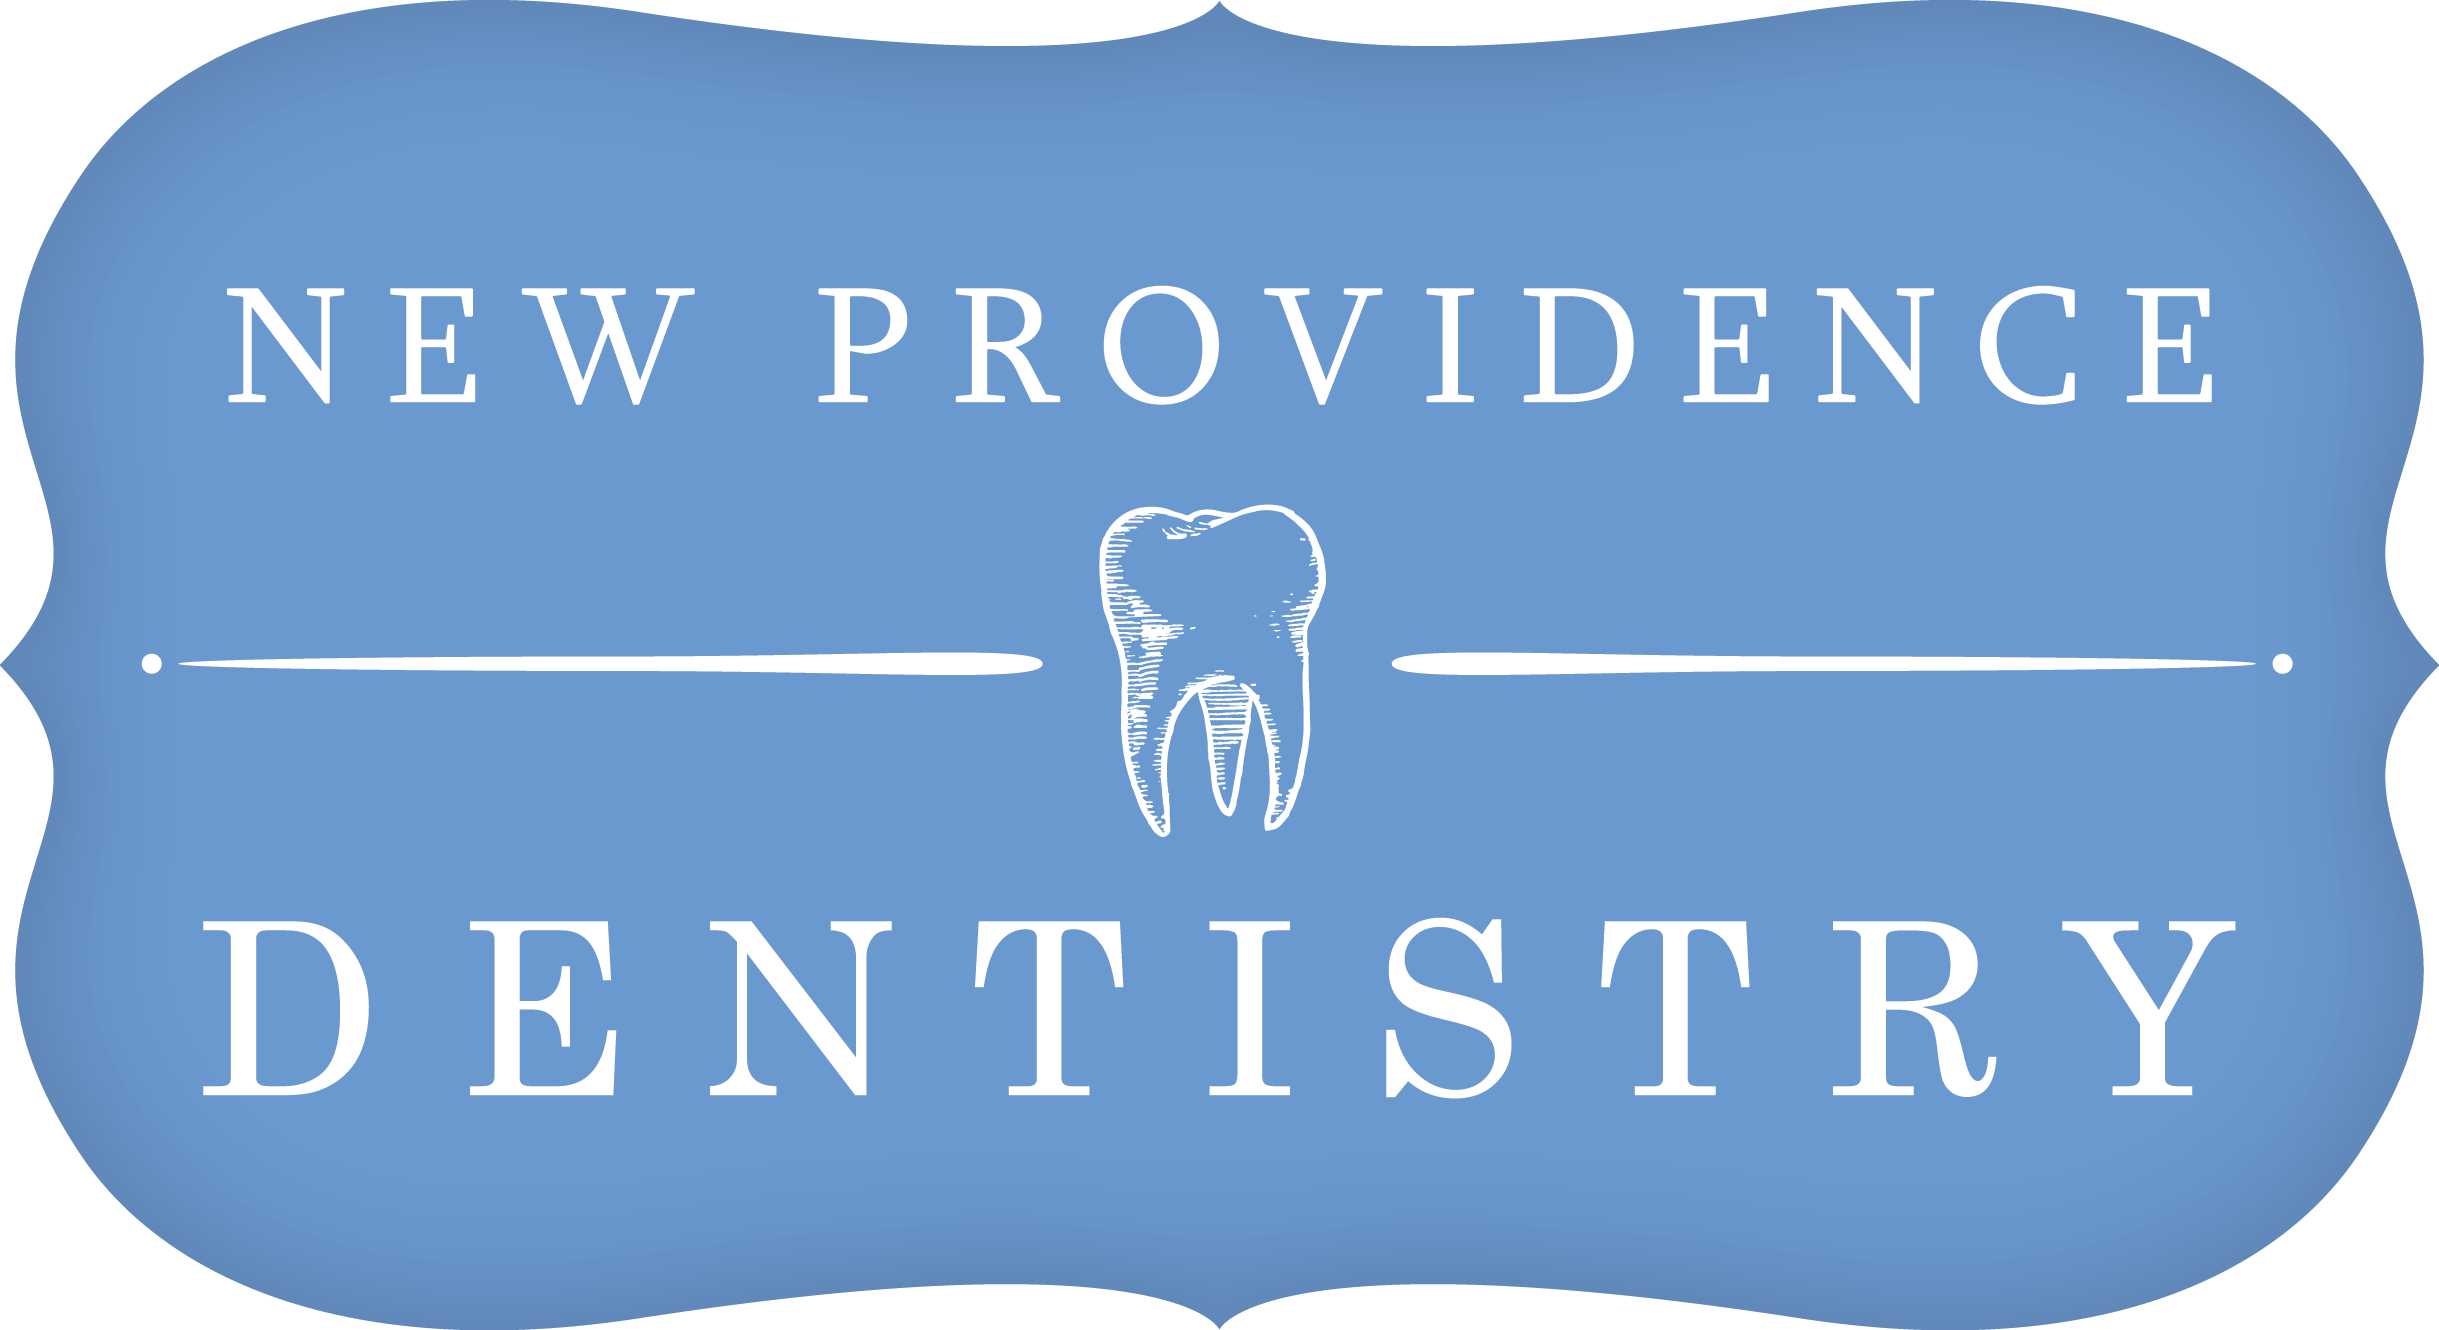 New Providence Dentistry